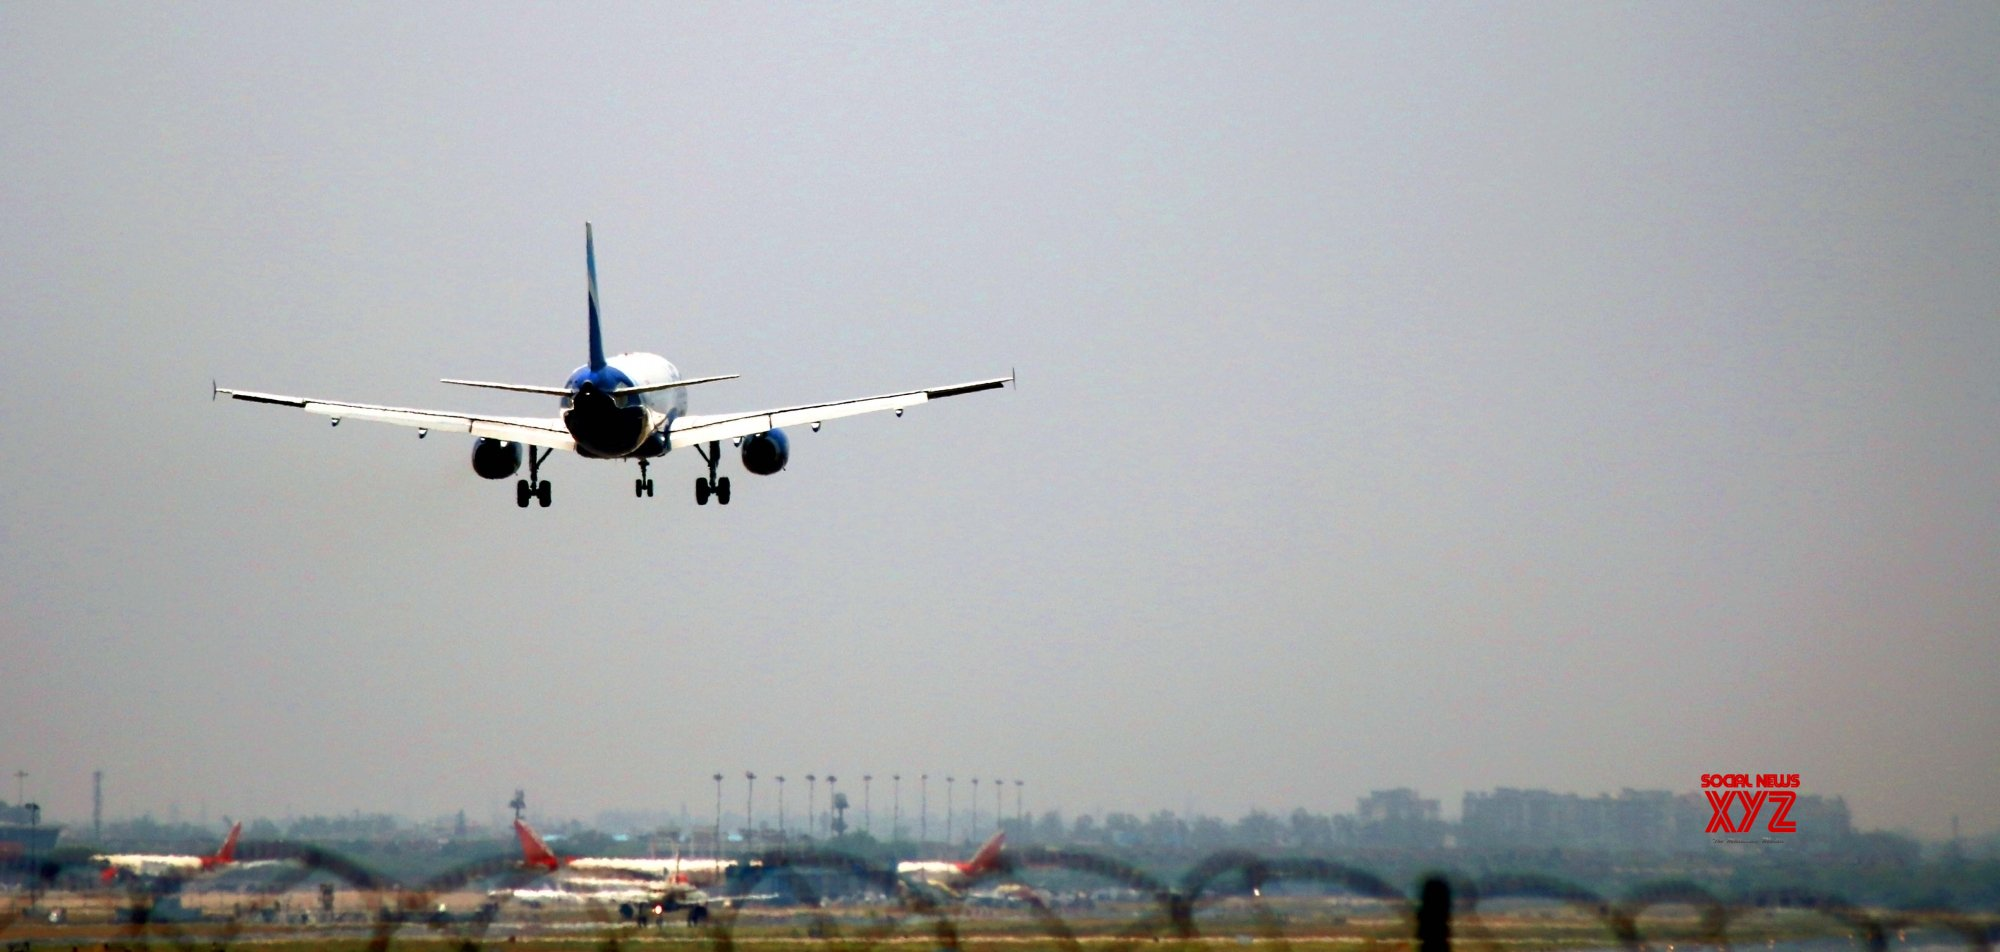 'Covid resurgence likely to delay airport passenger recovery'